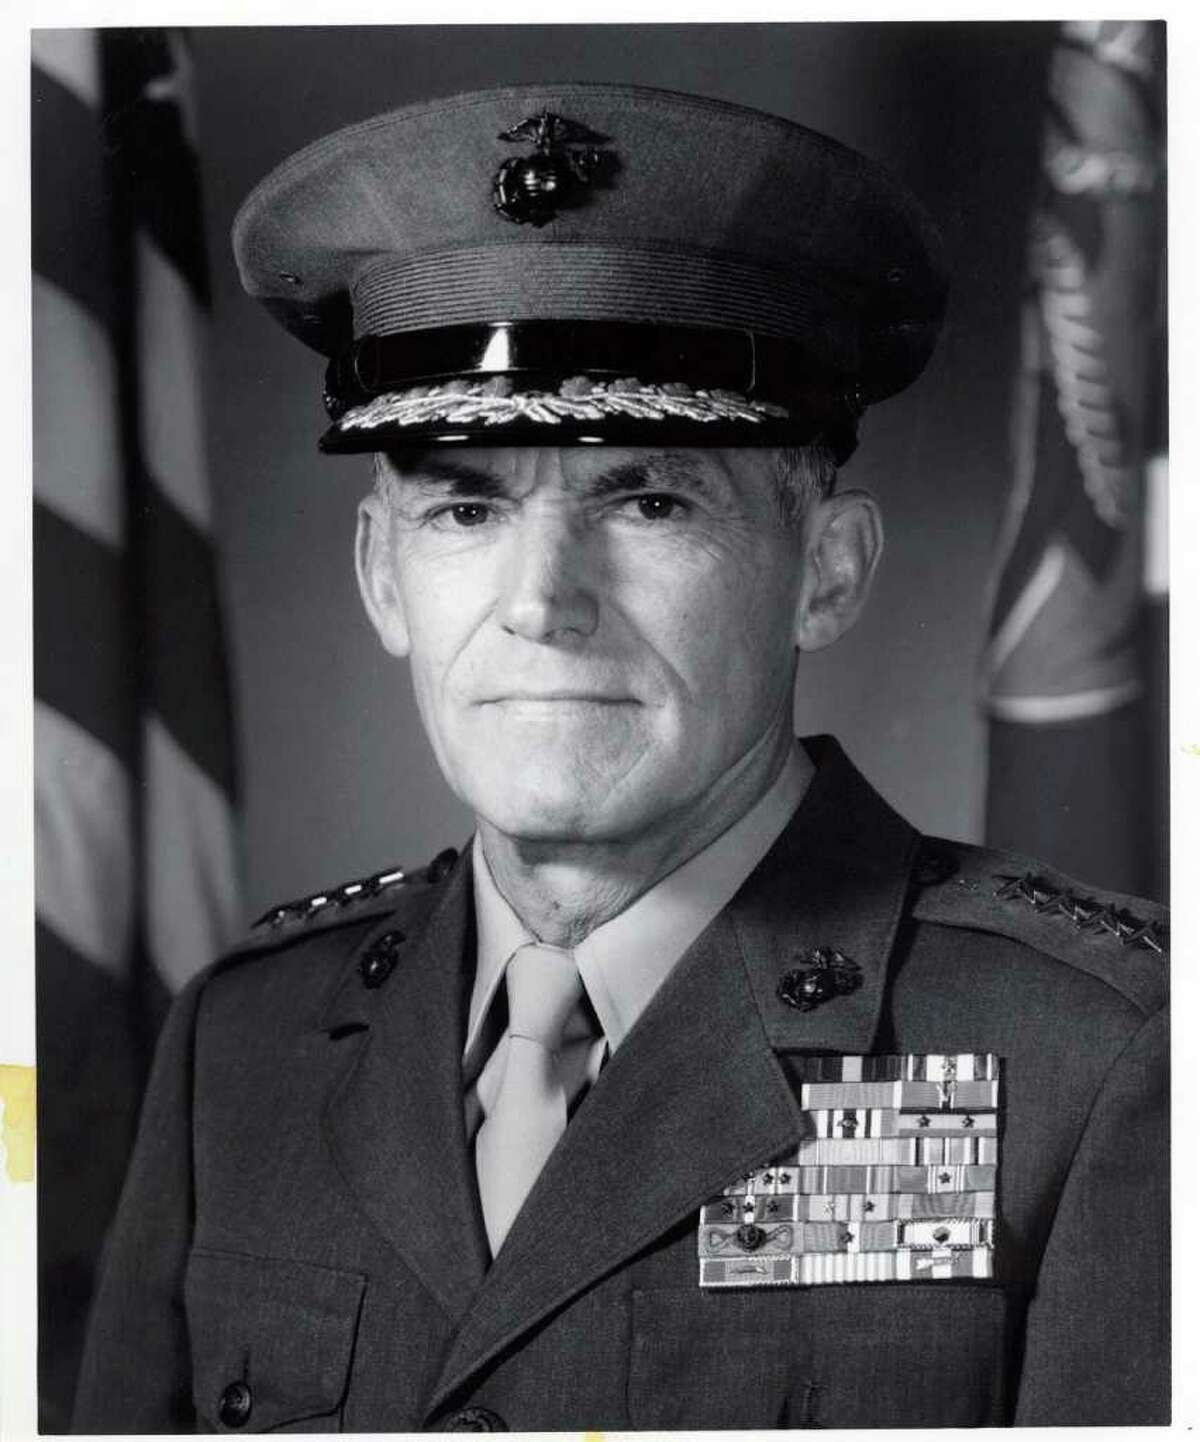 Ansonia, Conn. General Samuel Jaskilka, who served as Assistant Commandant of the Marine Corps, died on Jan. 15. He retired from the Corps in 1978 after 36 years of service. He was buried Thursday, Jan. 26 in Arlington National Cemetery.